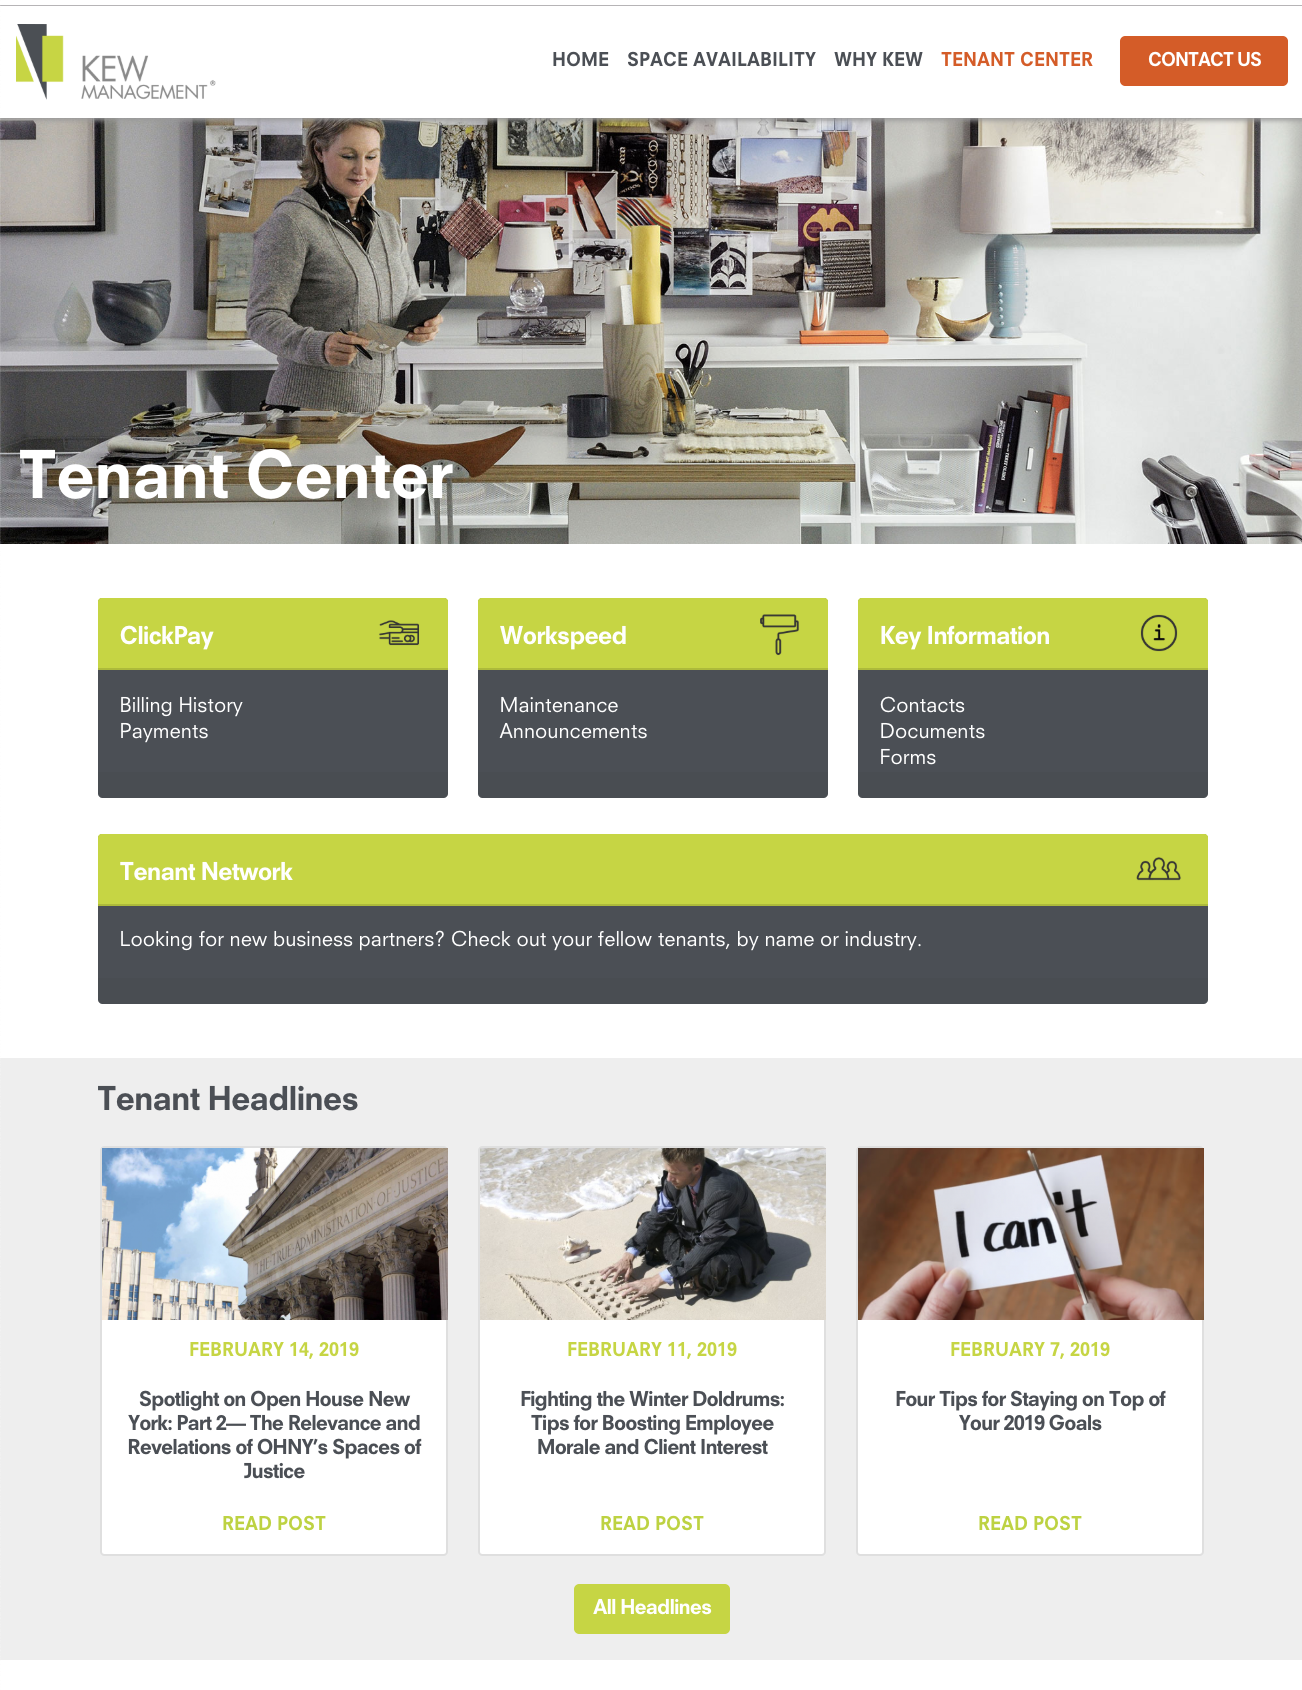 Making Your Experience Better: Try Our New Online Tenant Center